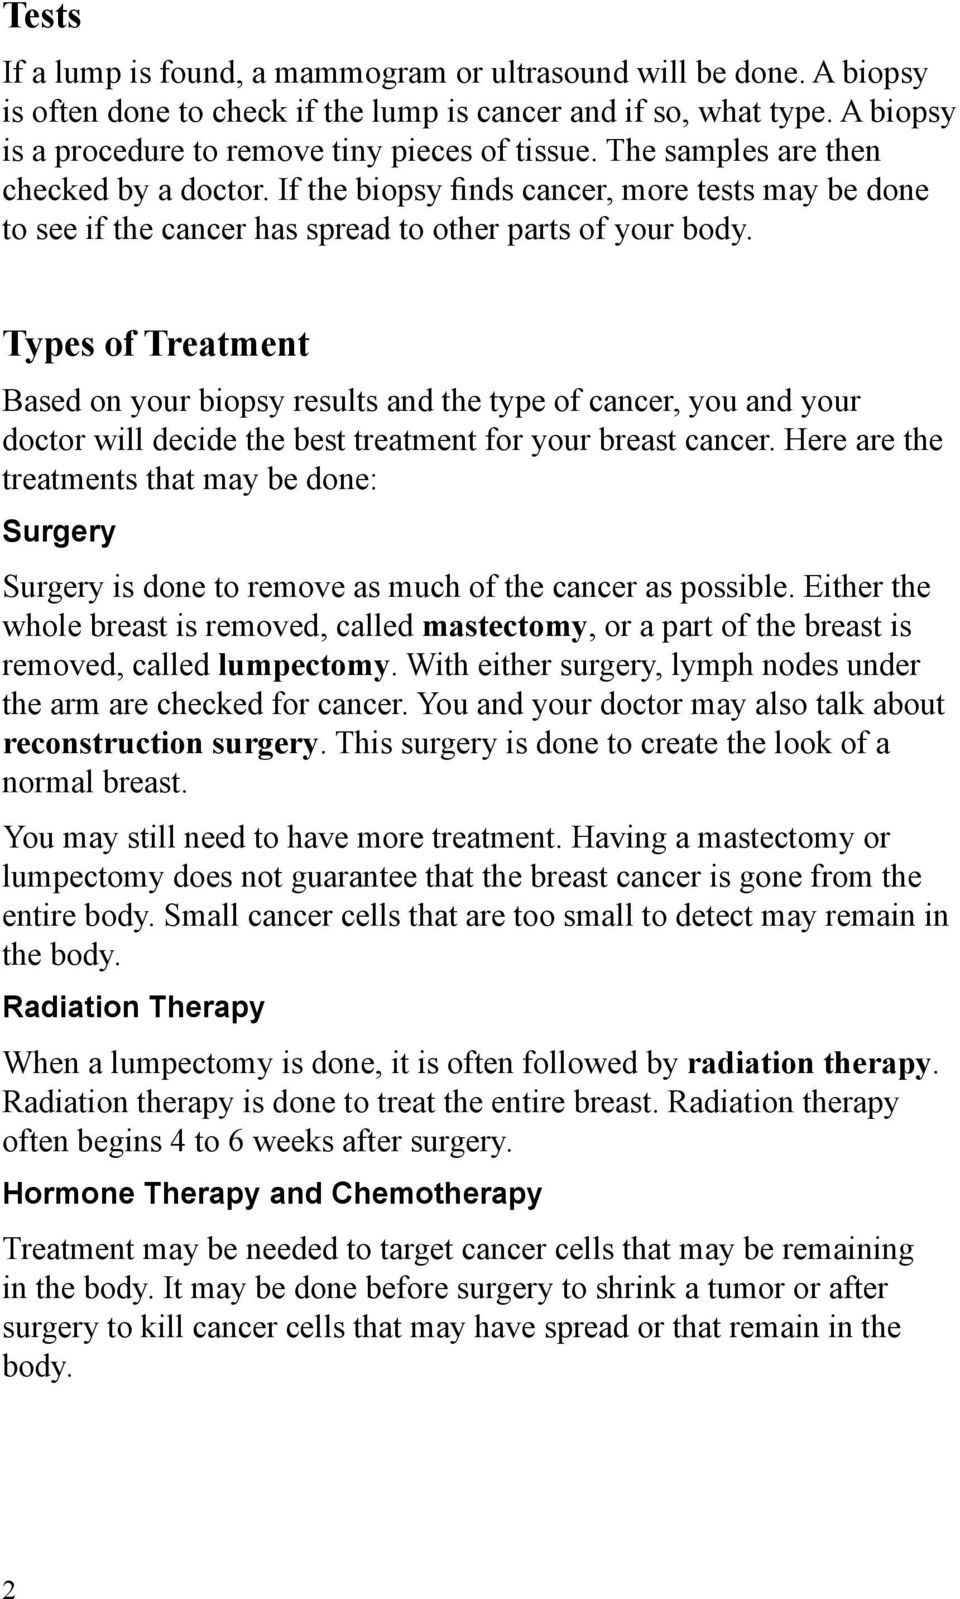 Types of Treatment Based on your biopsy results and the type of cancer, you and your doctor will decide the best treatment for your breast cancer.